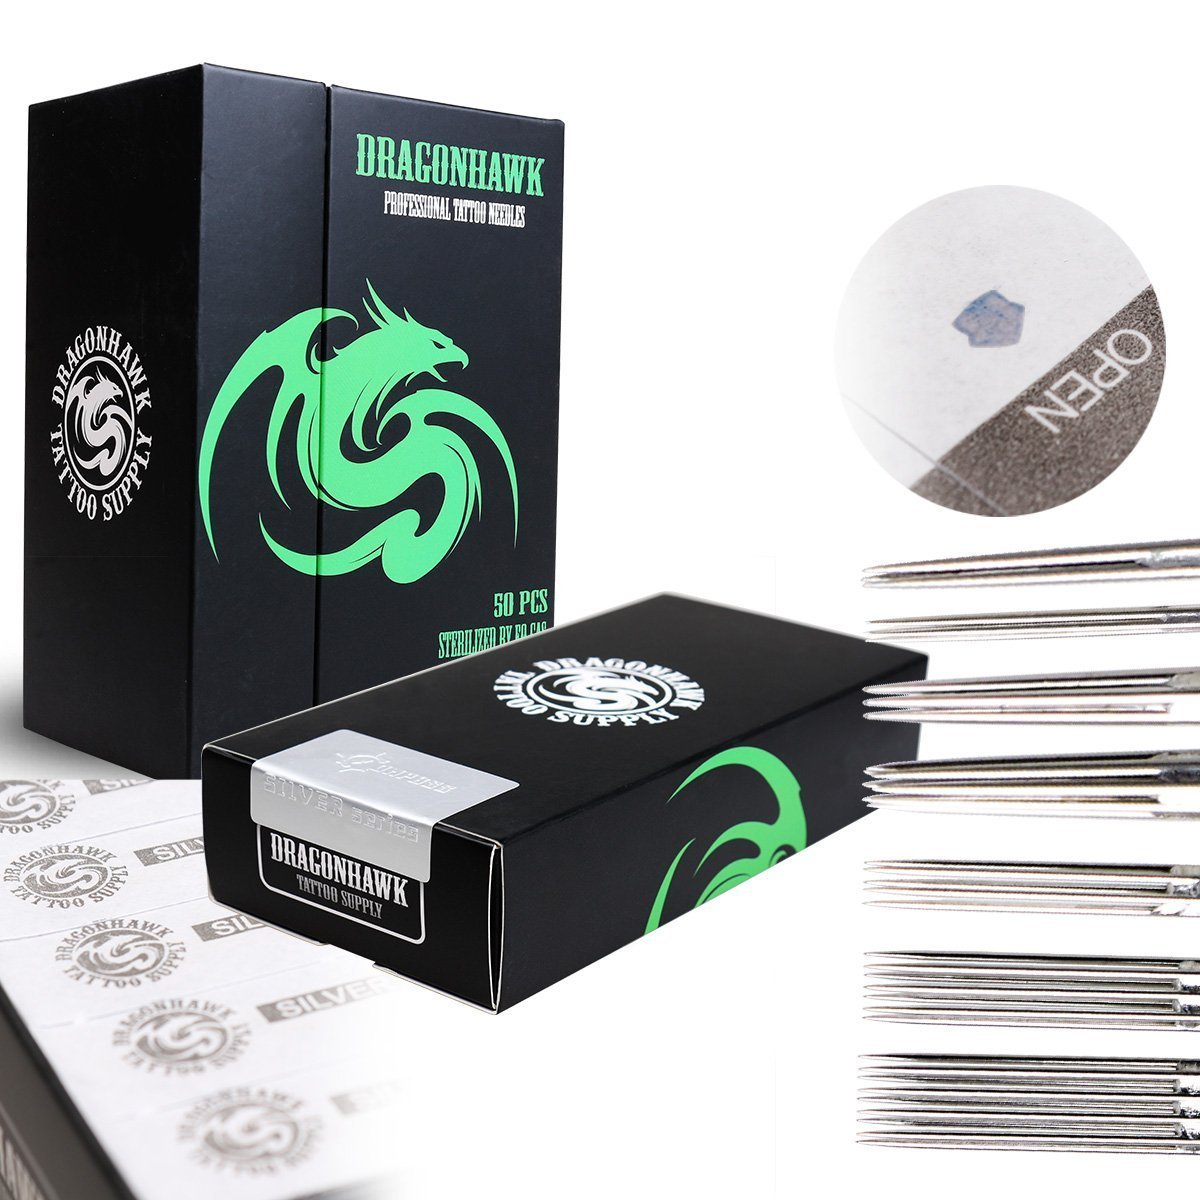 Dragonhawk Silver Series Tattoo Needles Assorted Liners and Shaders 50 Pcs Disposable & Sterilized Mixed Size Tattooing Needle Box YBZ